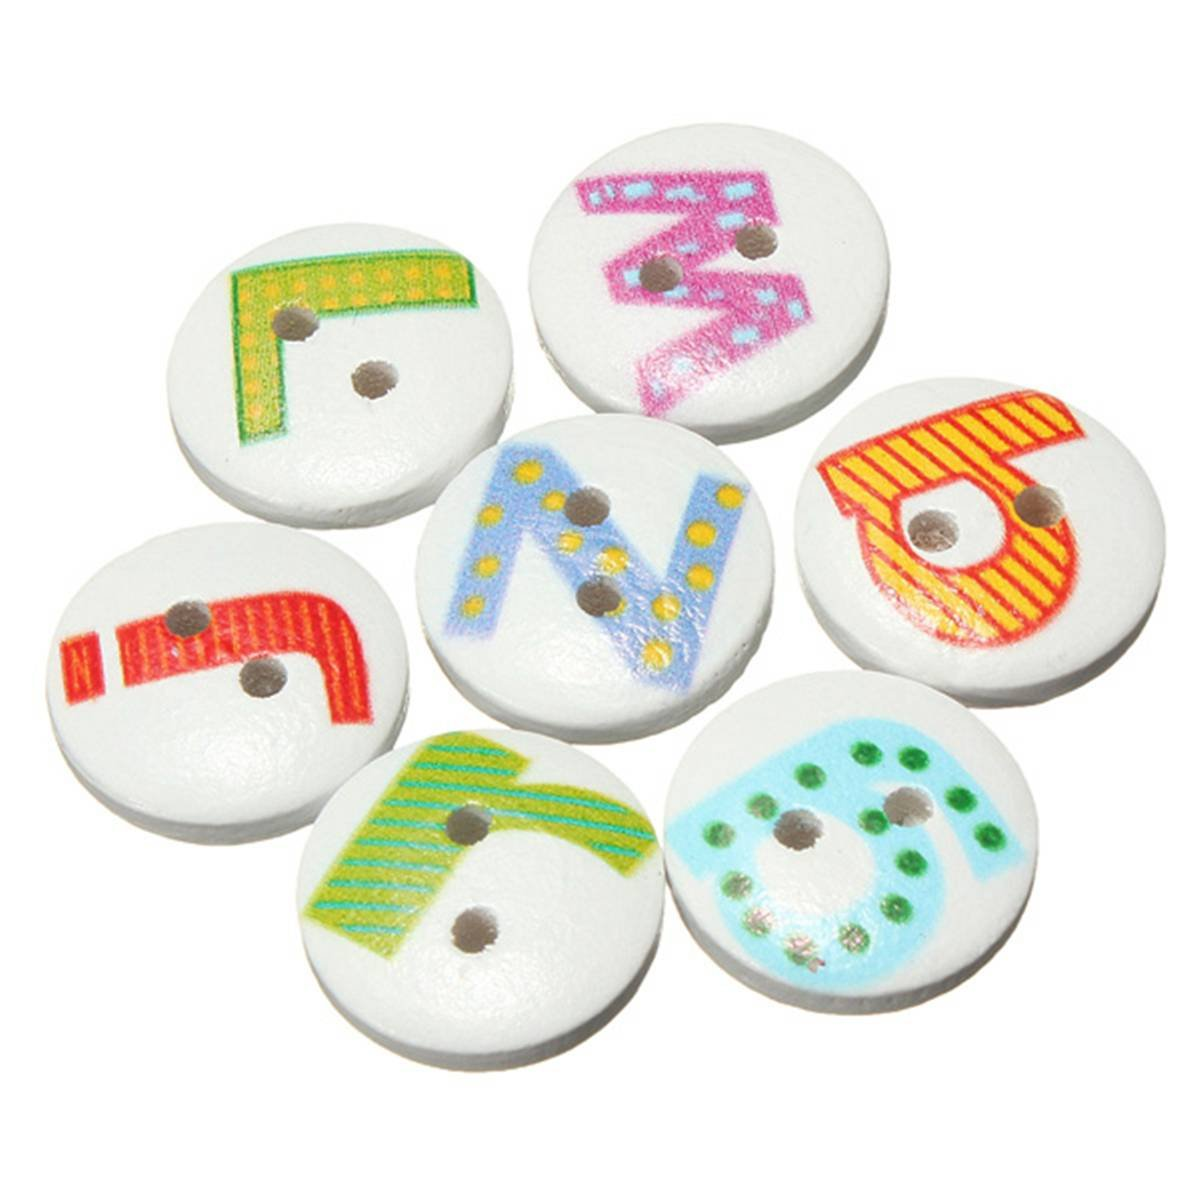 Best Selling 100Pcs Mixed Painted Letter Alphabet Wooden Sewing Button Scrapbooking